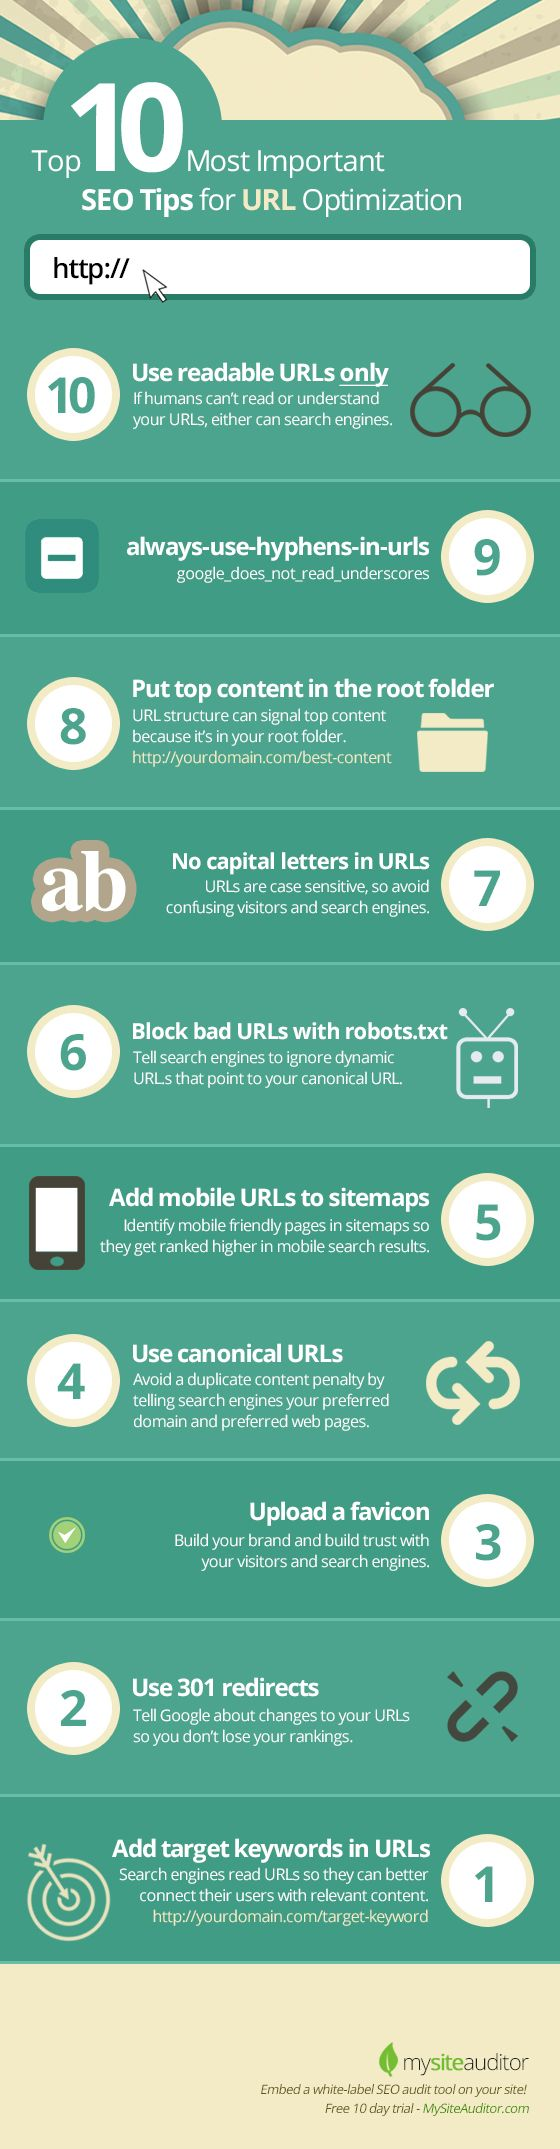 How to create SEO friendly URLs that help to optimize your page and increasing rankings.